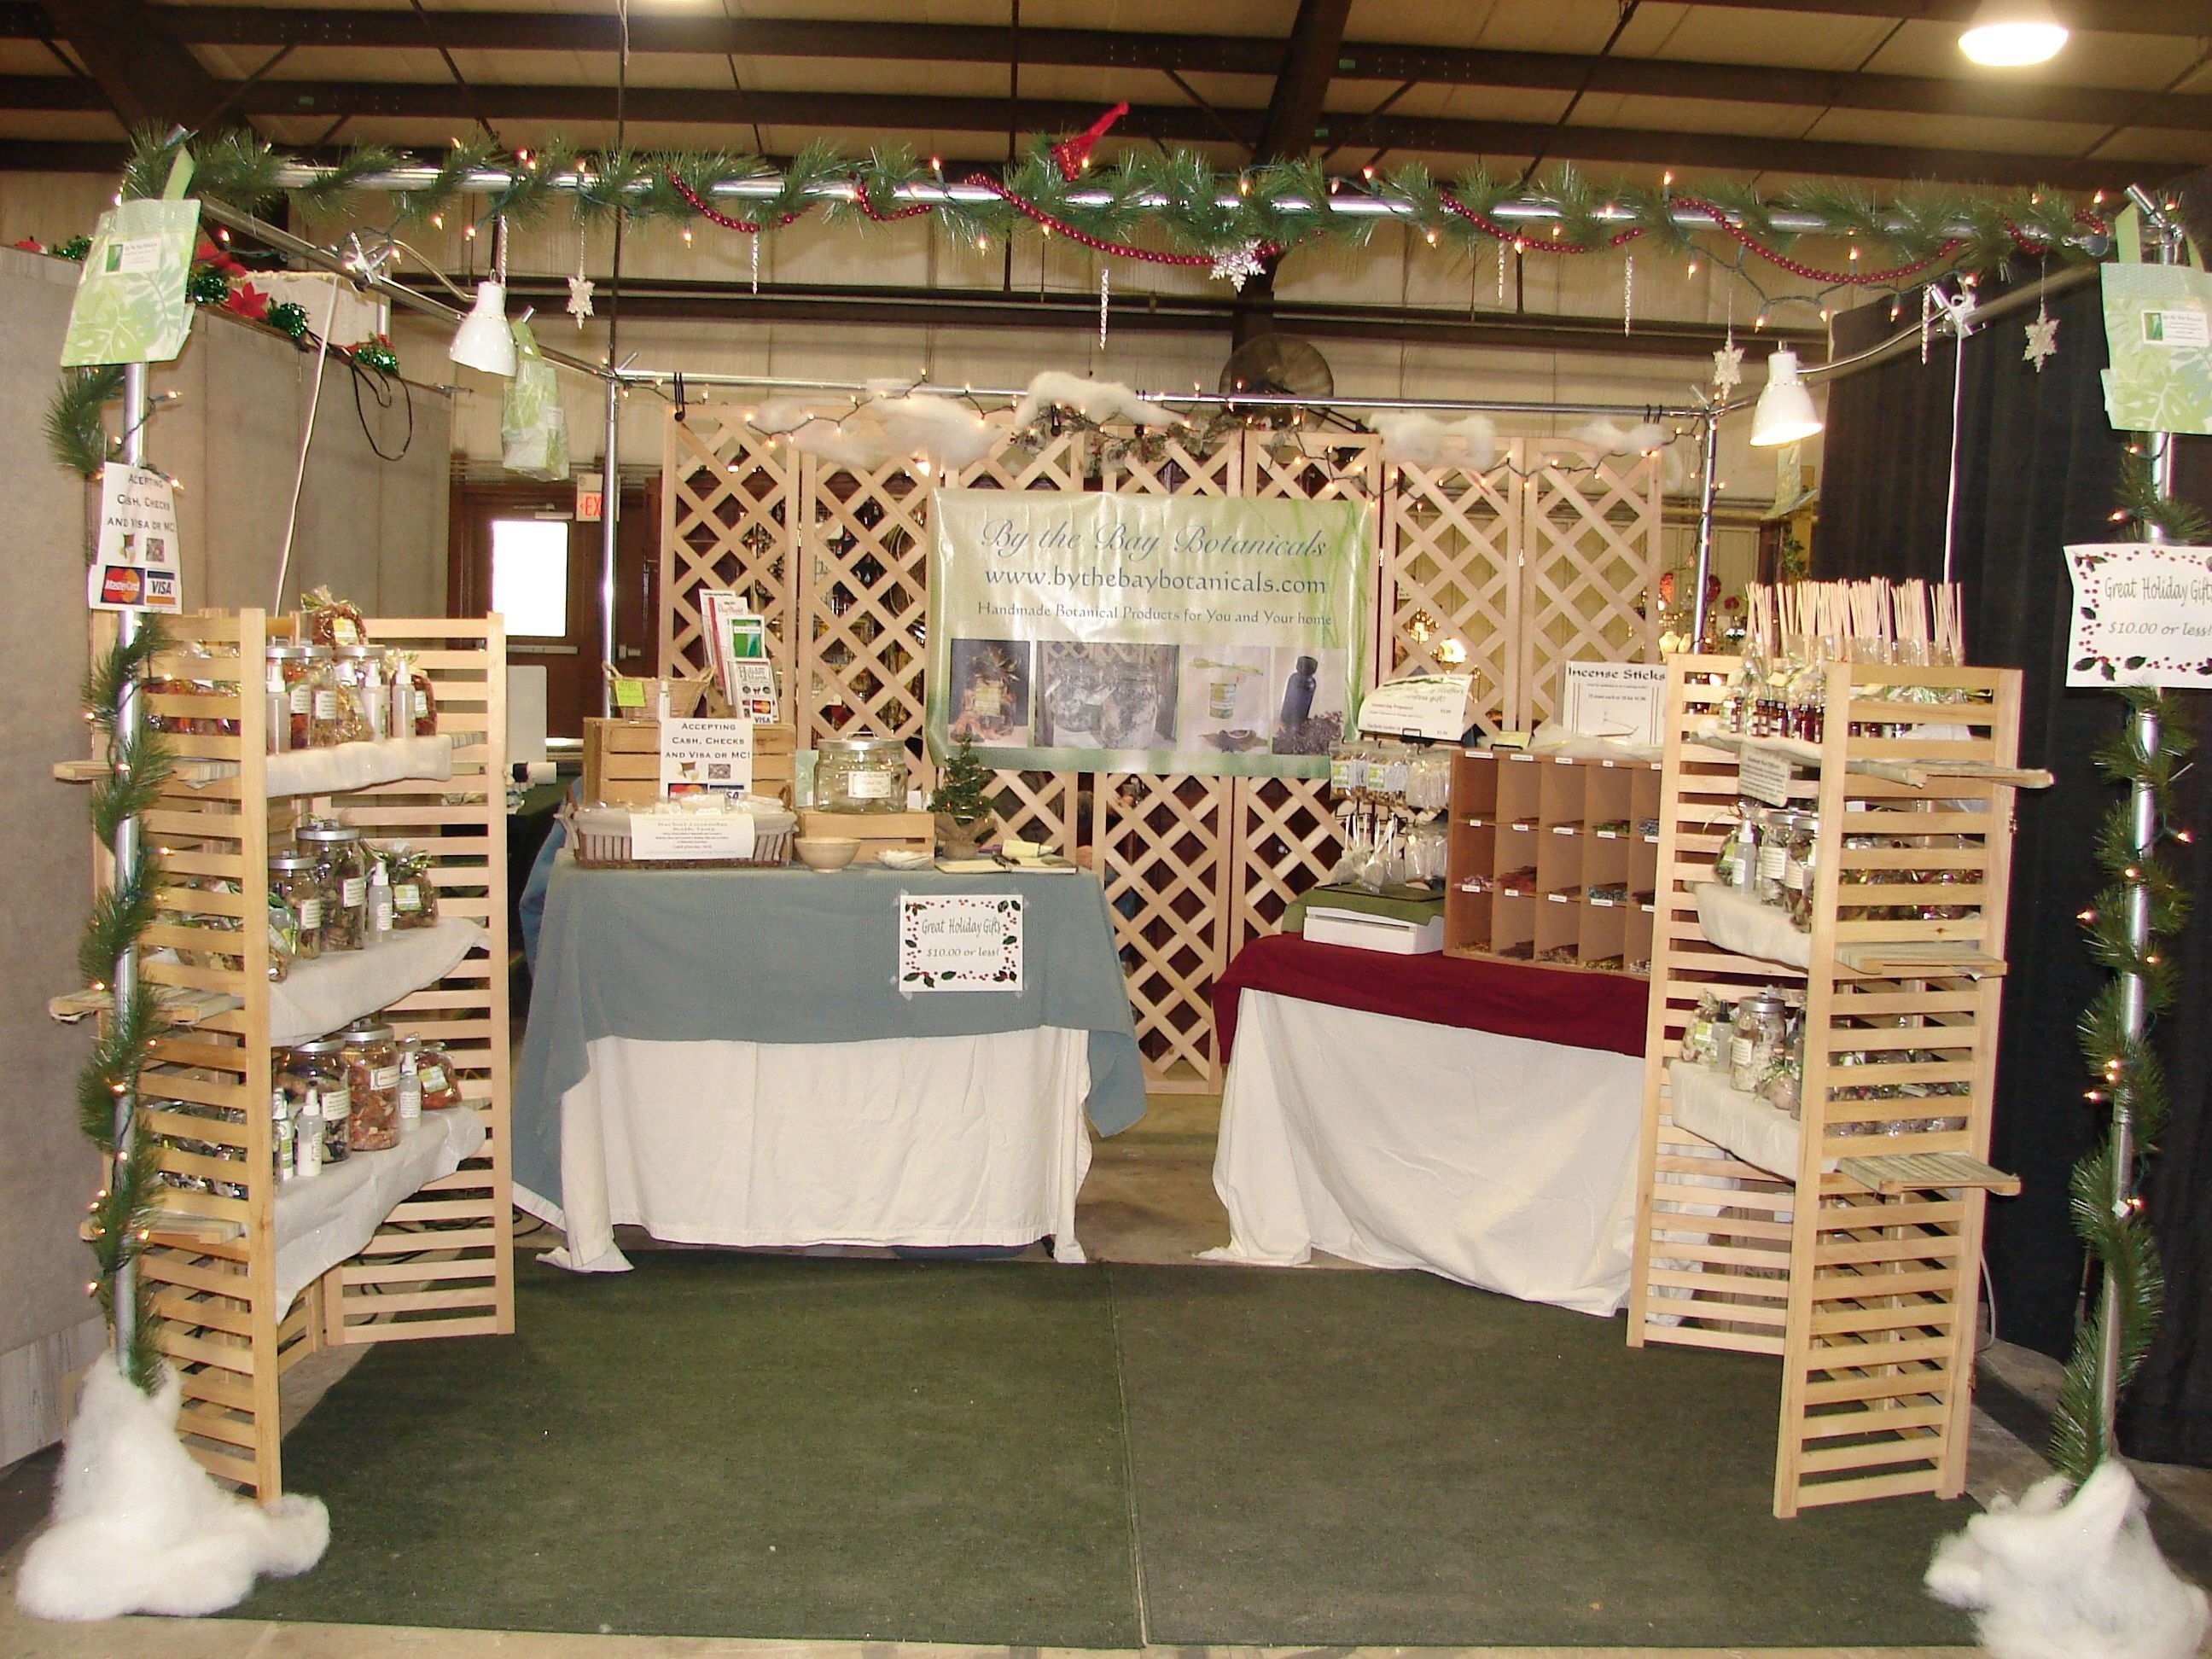 booth display ideas   craft & vendor booth   pinterest   craft booth